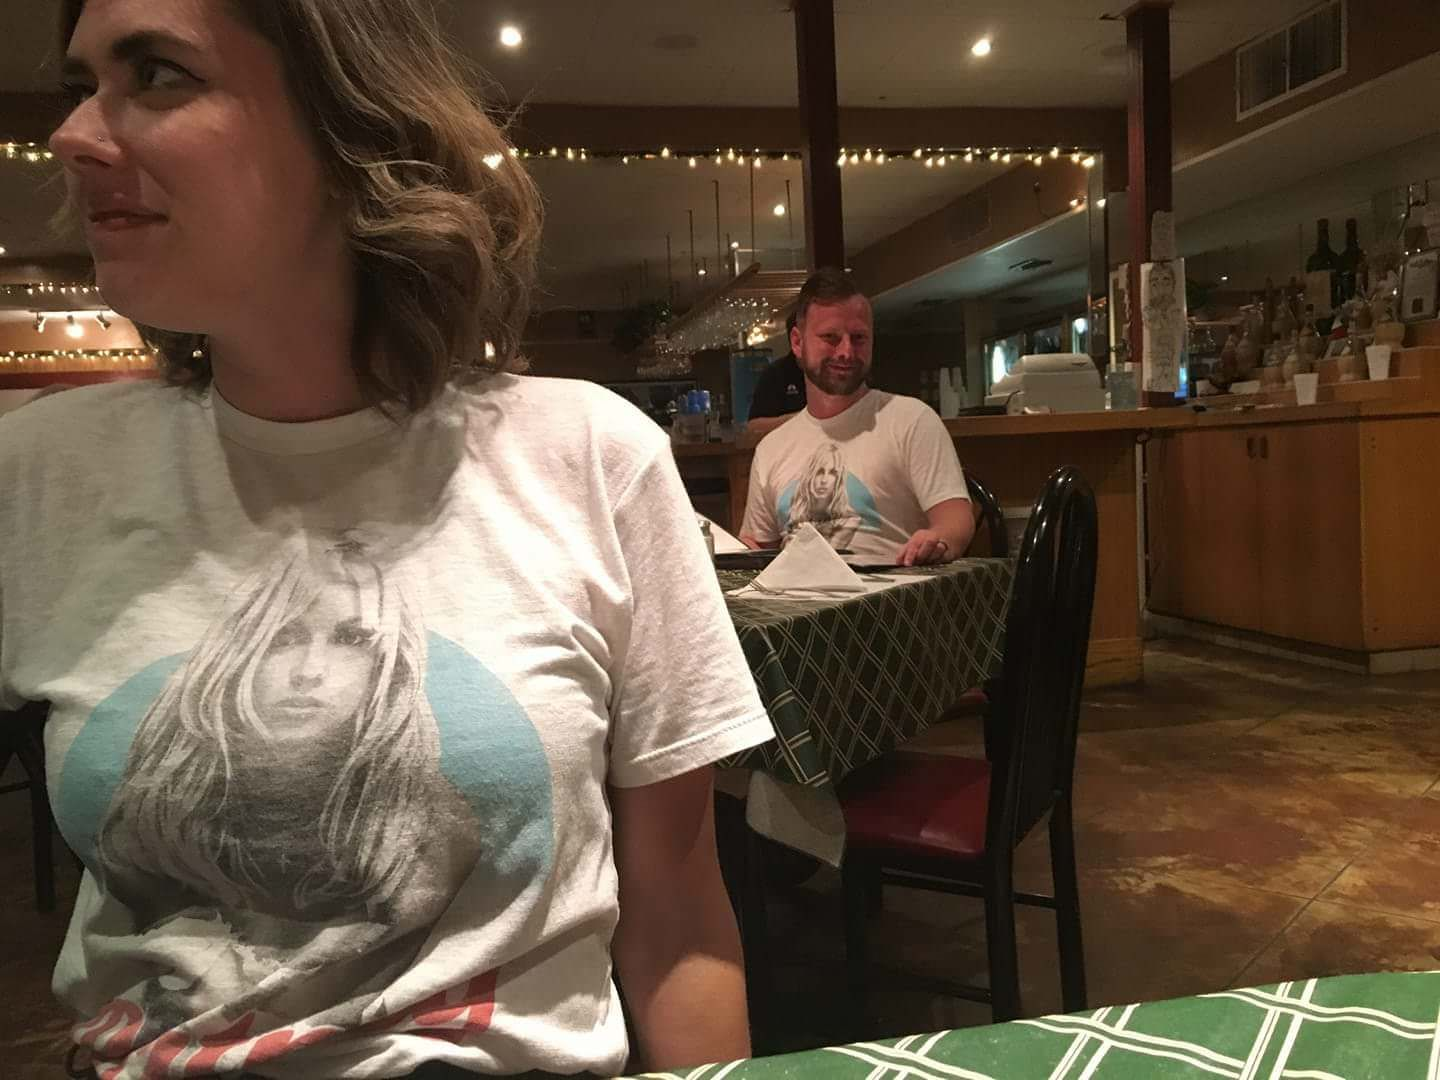 My friend is on vacation, and while out at a restaurant, a guy points out he's wearing the same shirt as his girlfriend.